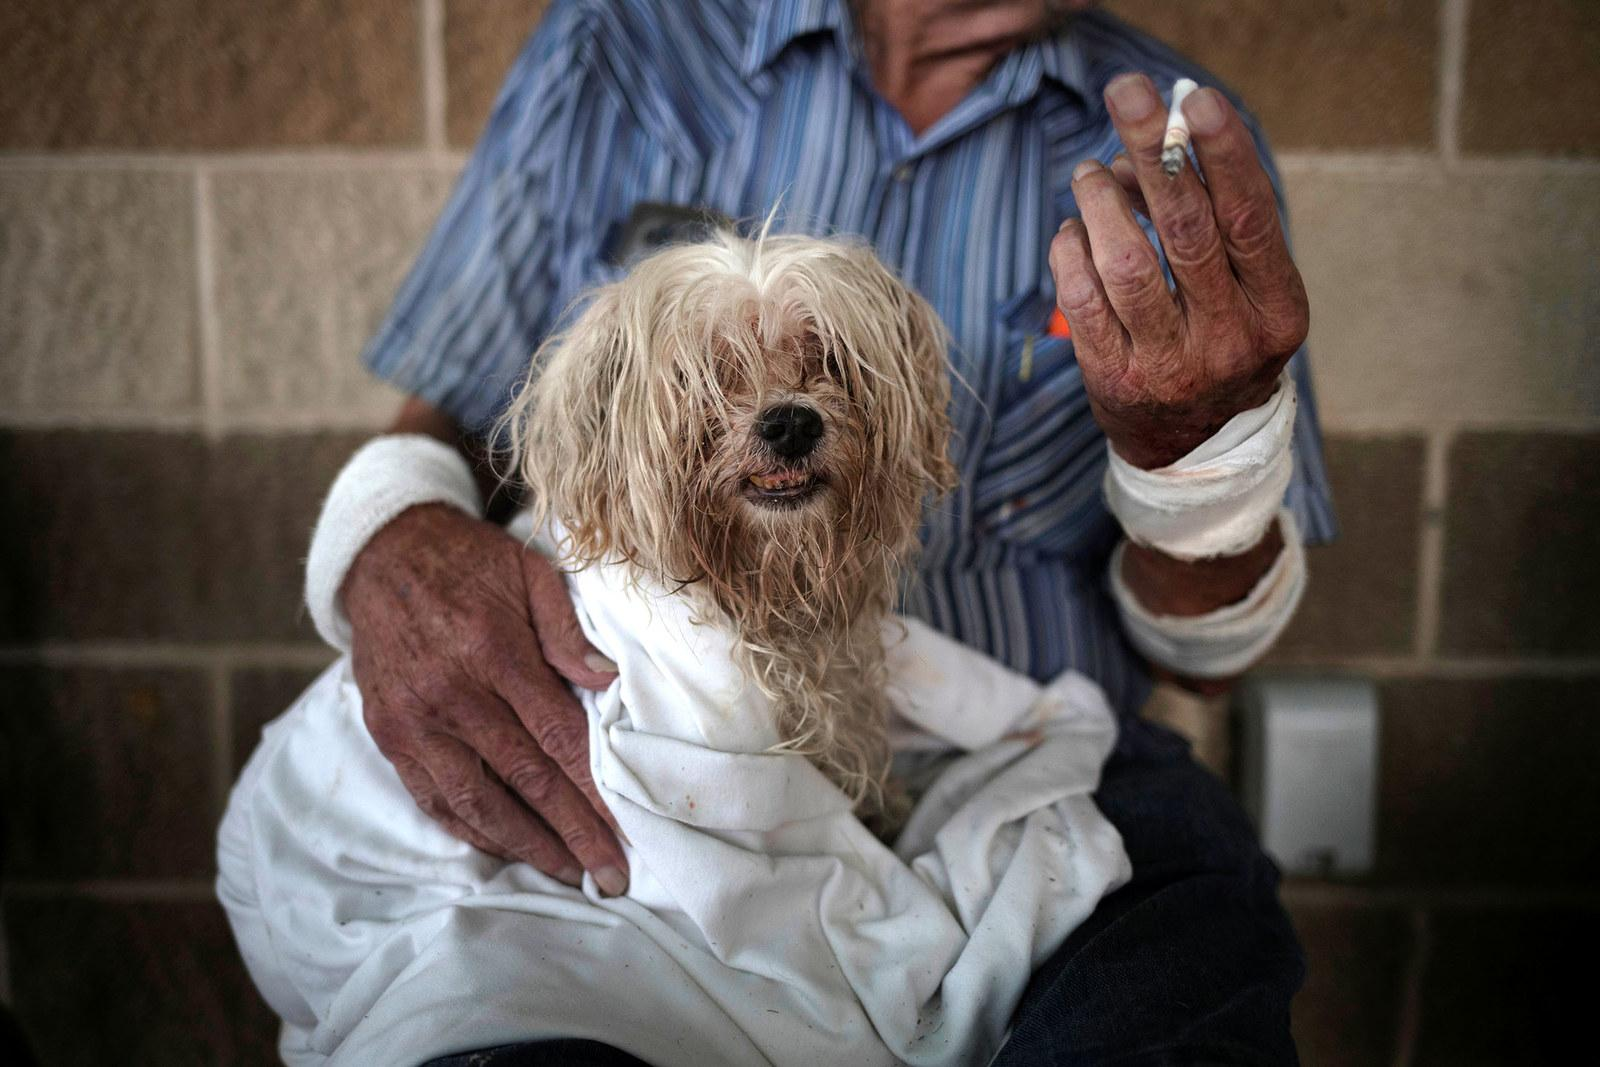 Bentley, a 10-year-old Maltese, takes refuge with his owner in a school after they lost their home in Rockport, Texas, on Aug. 26.